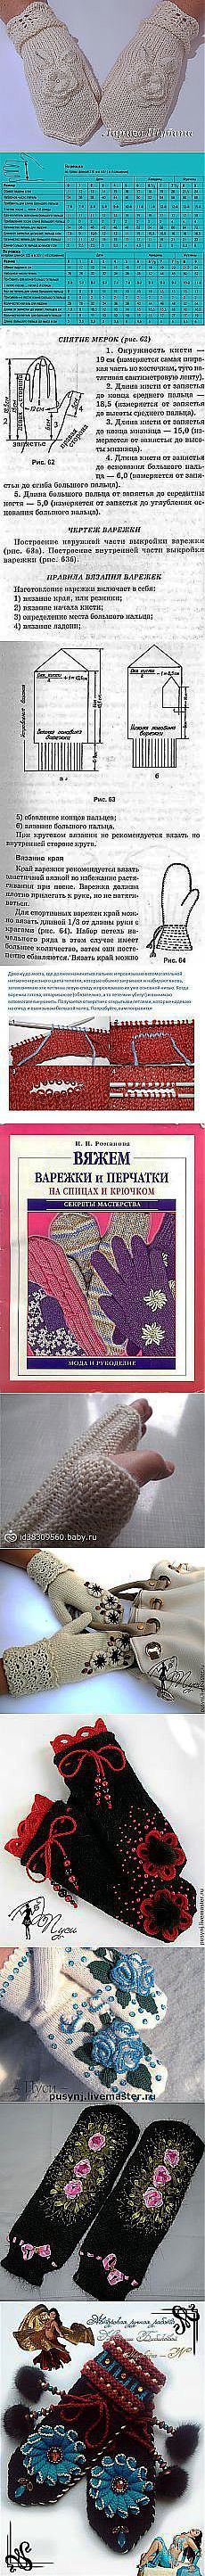 How to Knit Gloves that Fit Perfectly ___ How to Measure Your Hand to Make Gloves and Mittens that Fit Exactly ___________________________ Маргарита Боркина: Вязание - варежки, перчатки, митенки   Постила